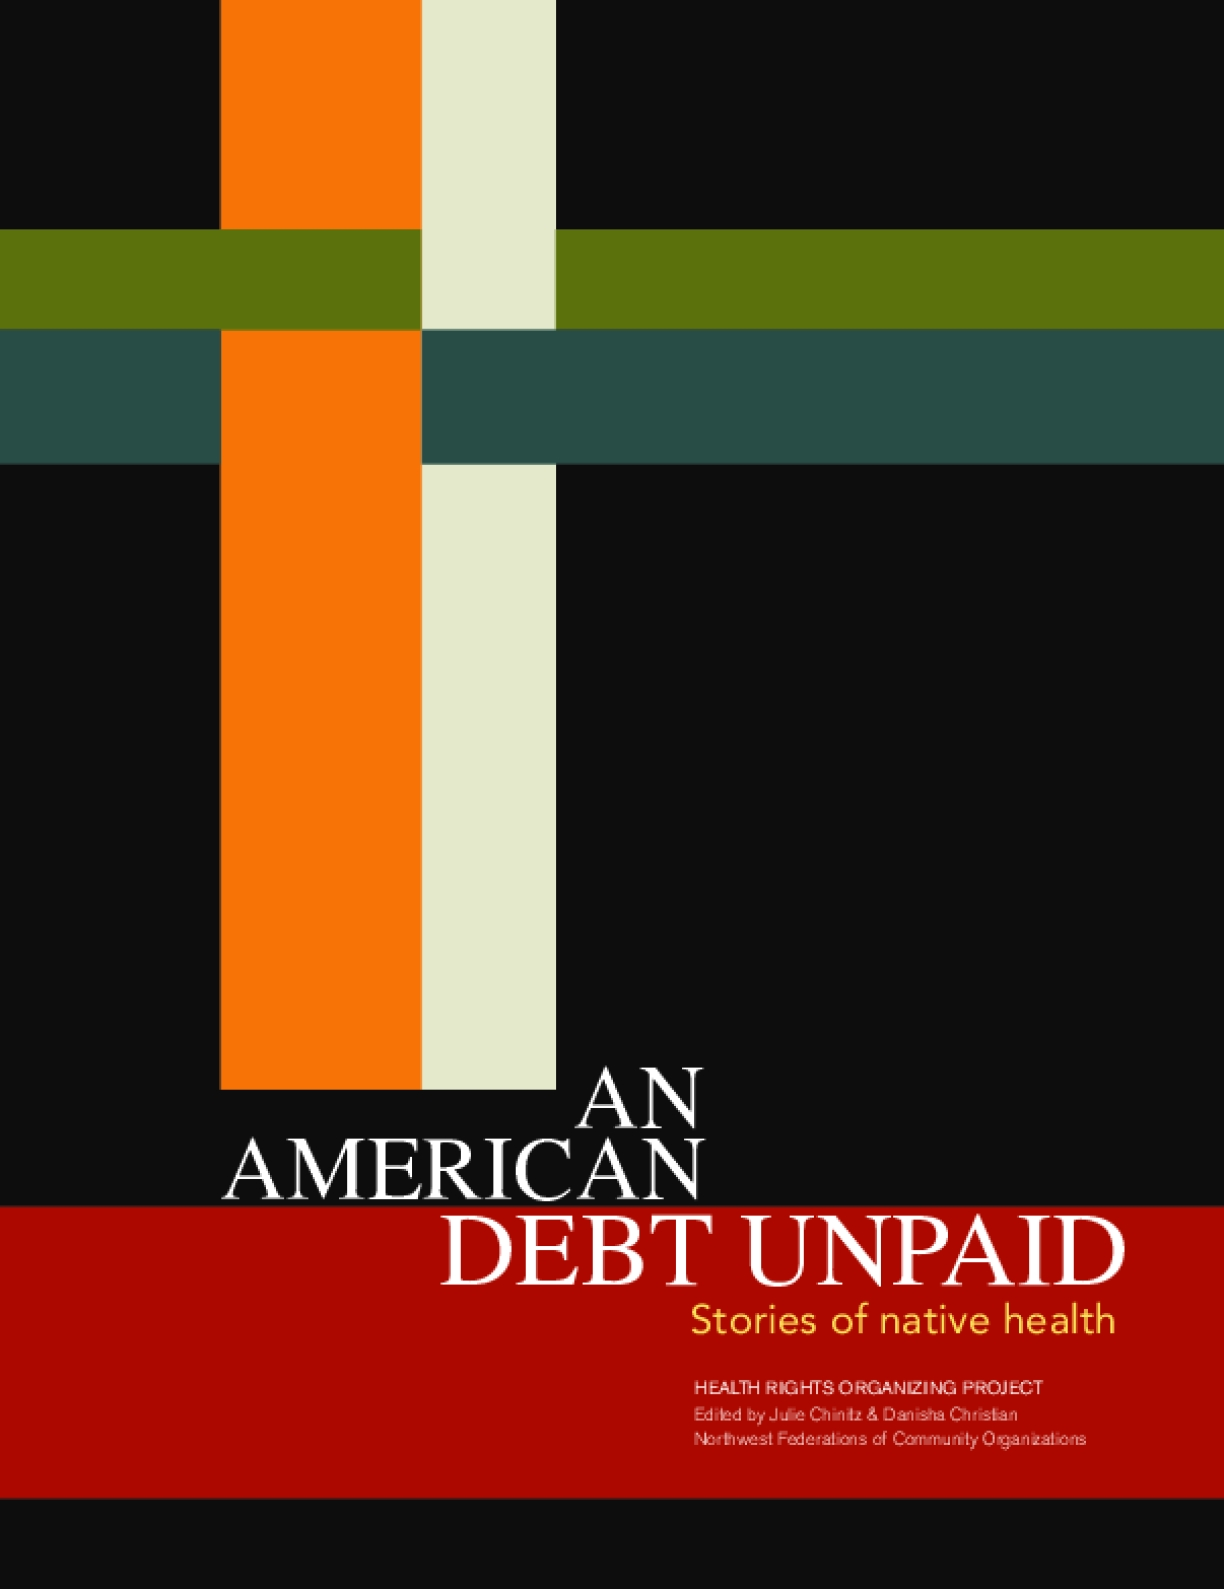 An American Debt Unpaid: Stories of Native Health